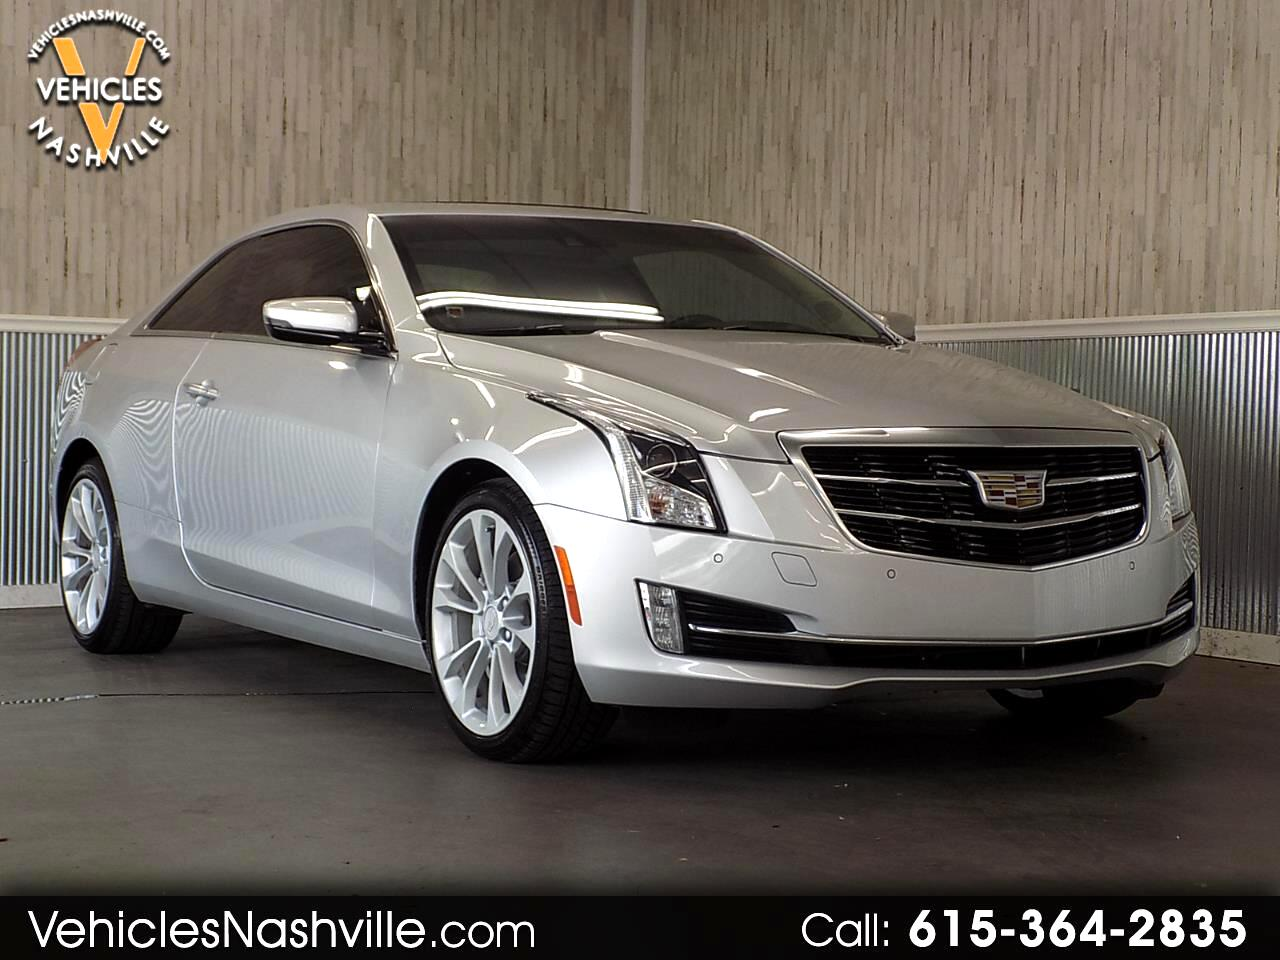 Cadillac ATS Coupe 3.6L Performance AWD w/Driver Assist Pkg. 2017